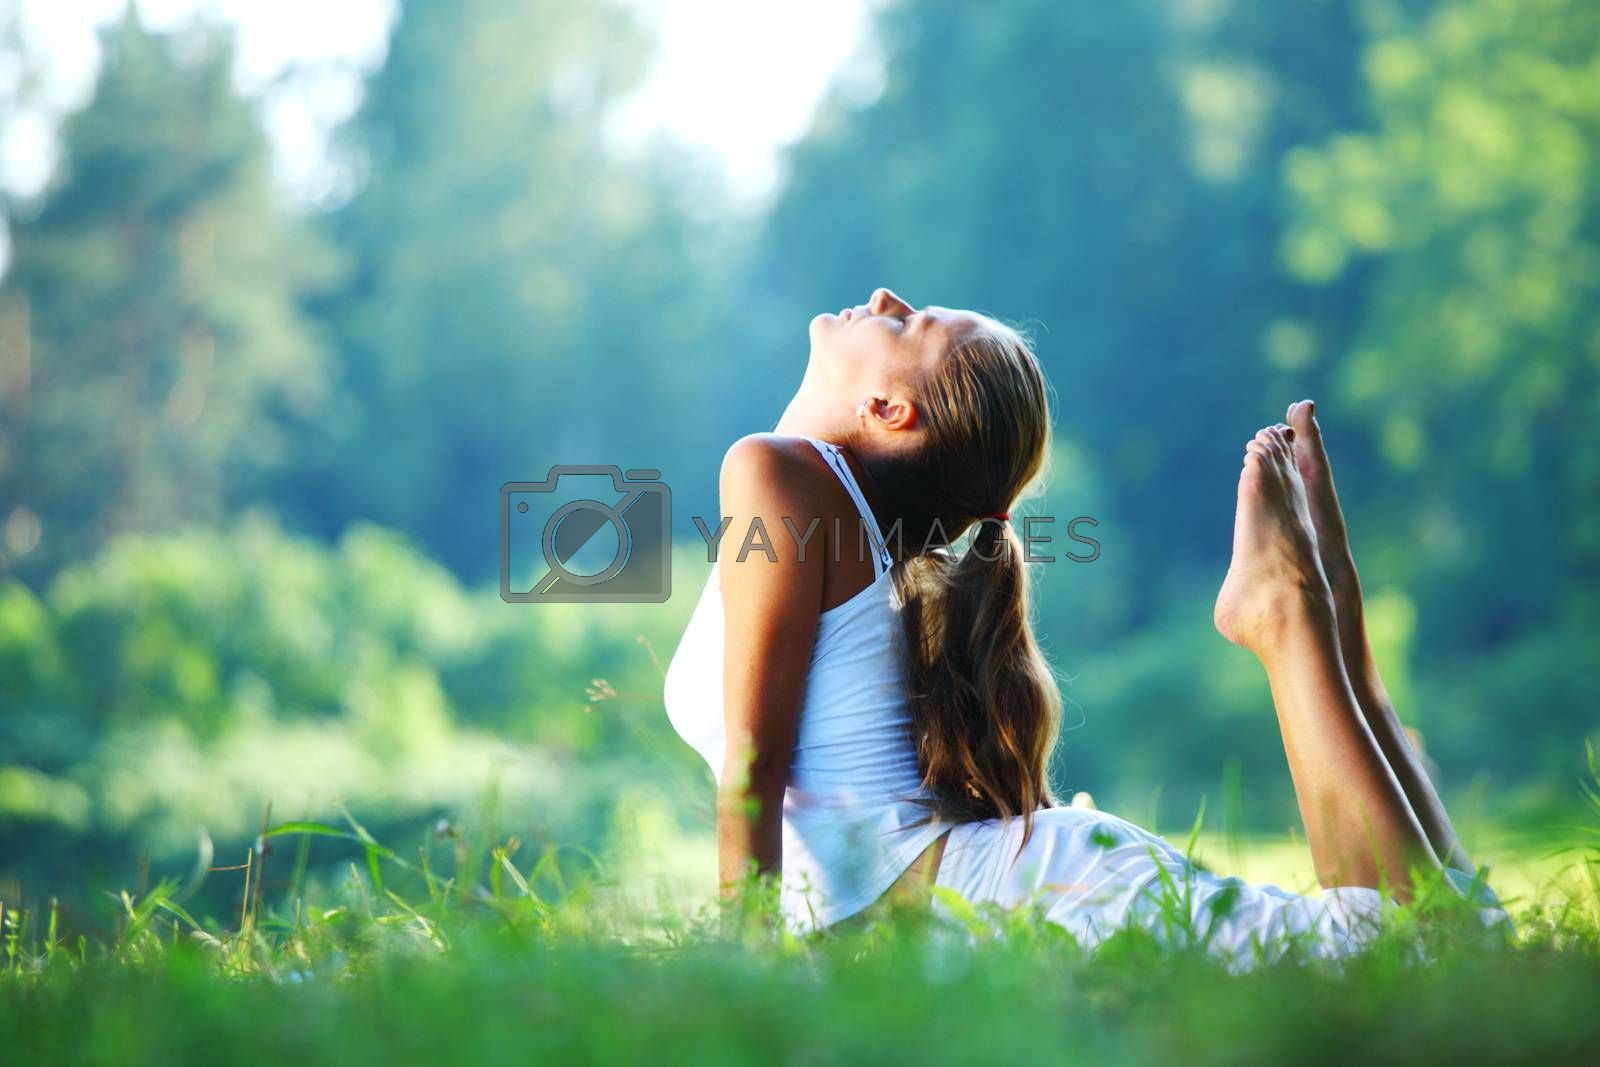 Yoga woman in white on green park grass in cobra asana pose